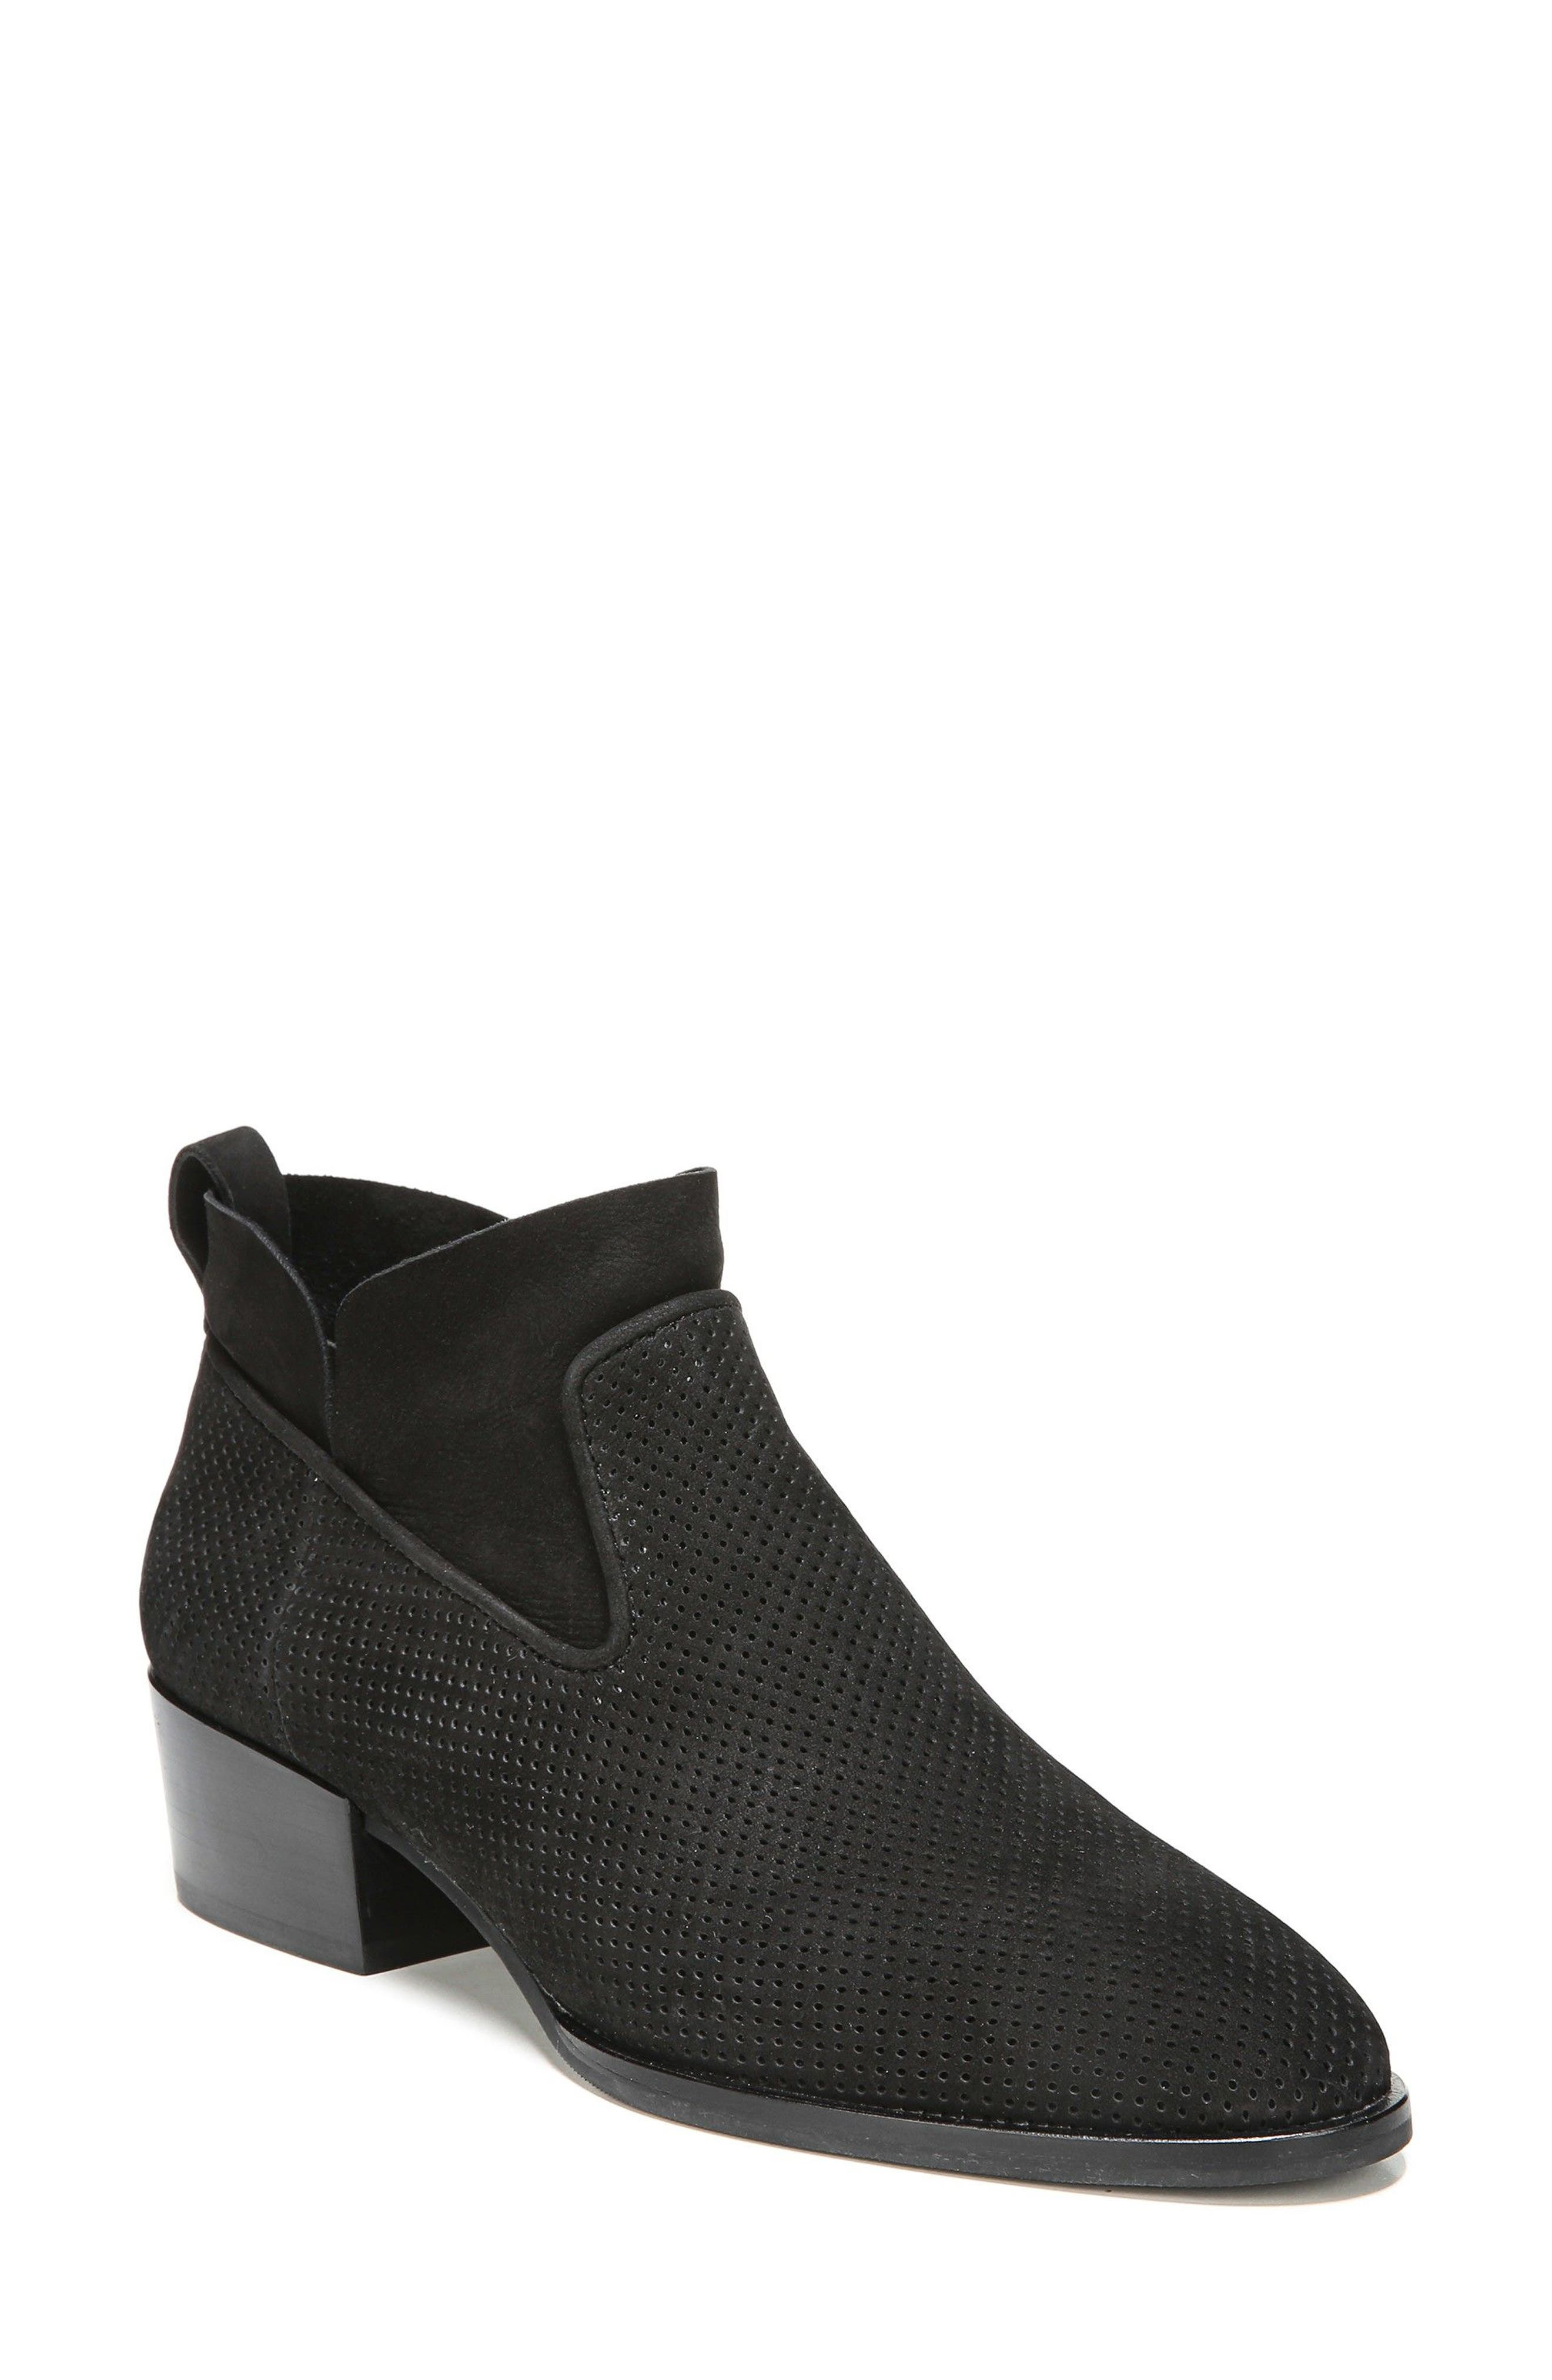 Tricia Bootie,                         Main,                         color, 001